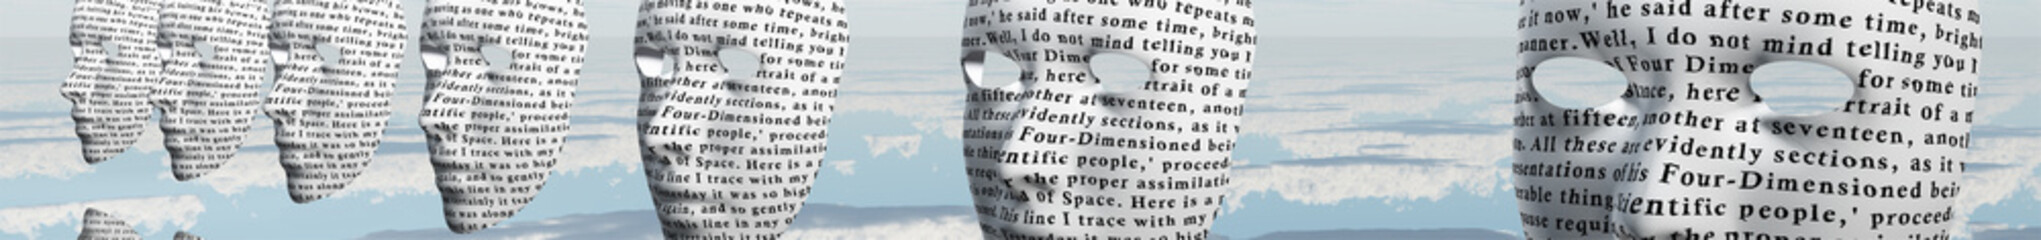 Humanlike faces covered in text